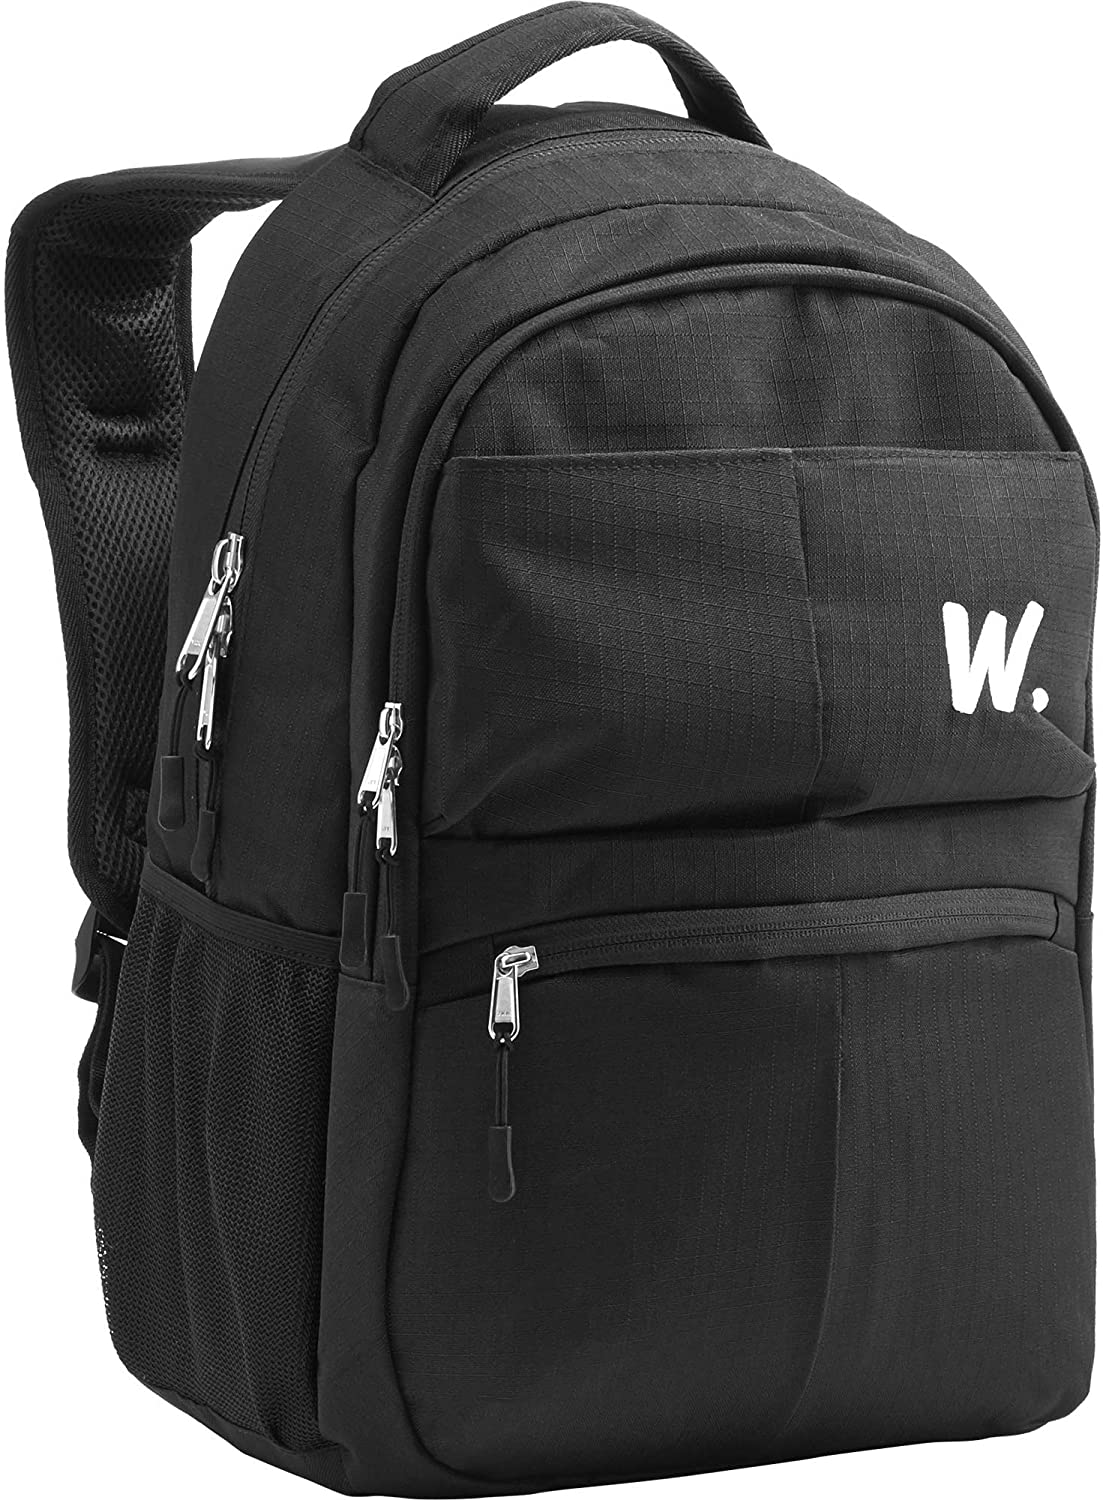 Insulated Soft Cooler Backpack, Fits 30 Cans, Leak Proof, Made from Ripstop Nylon